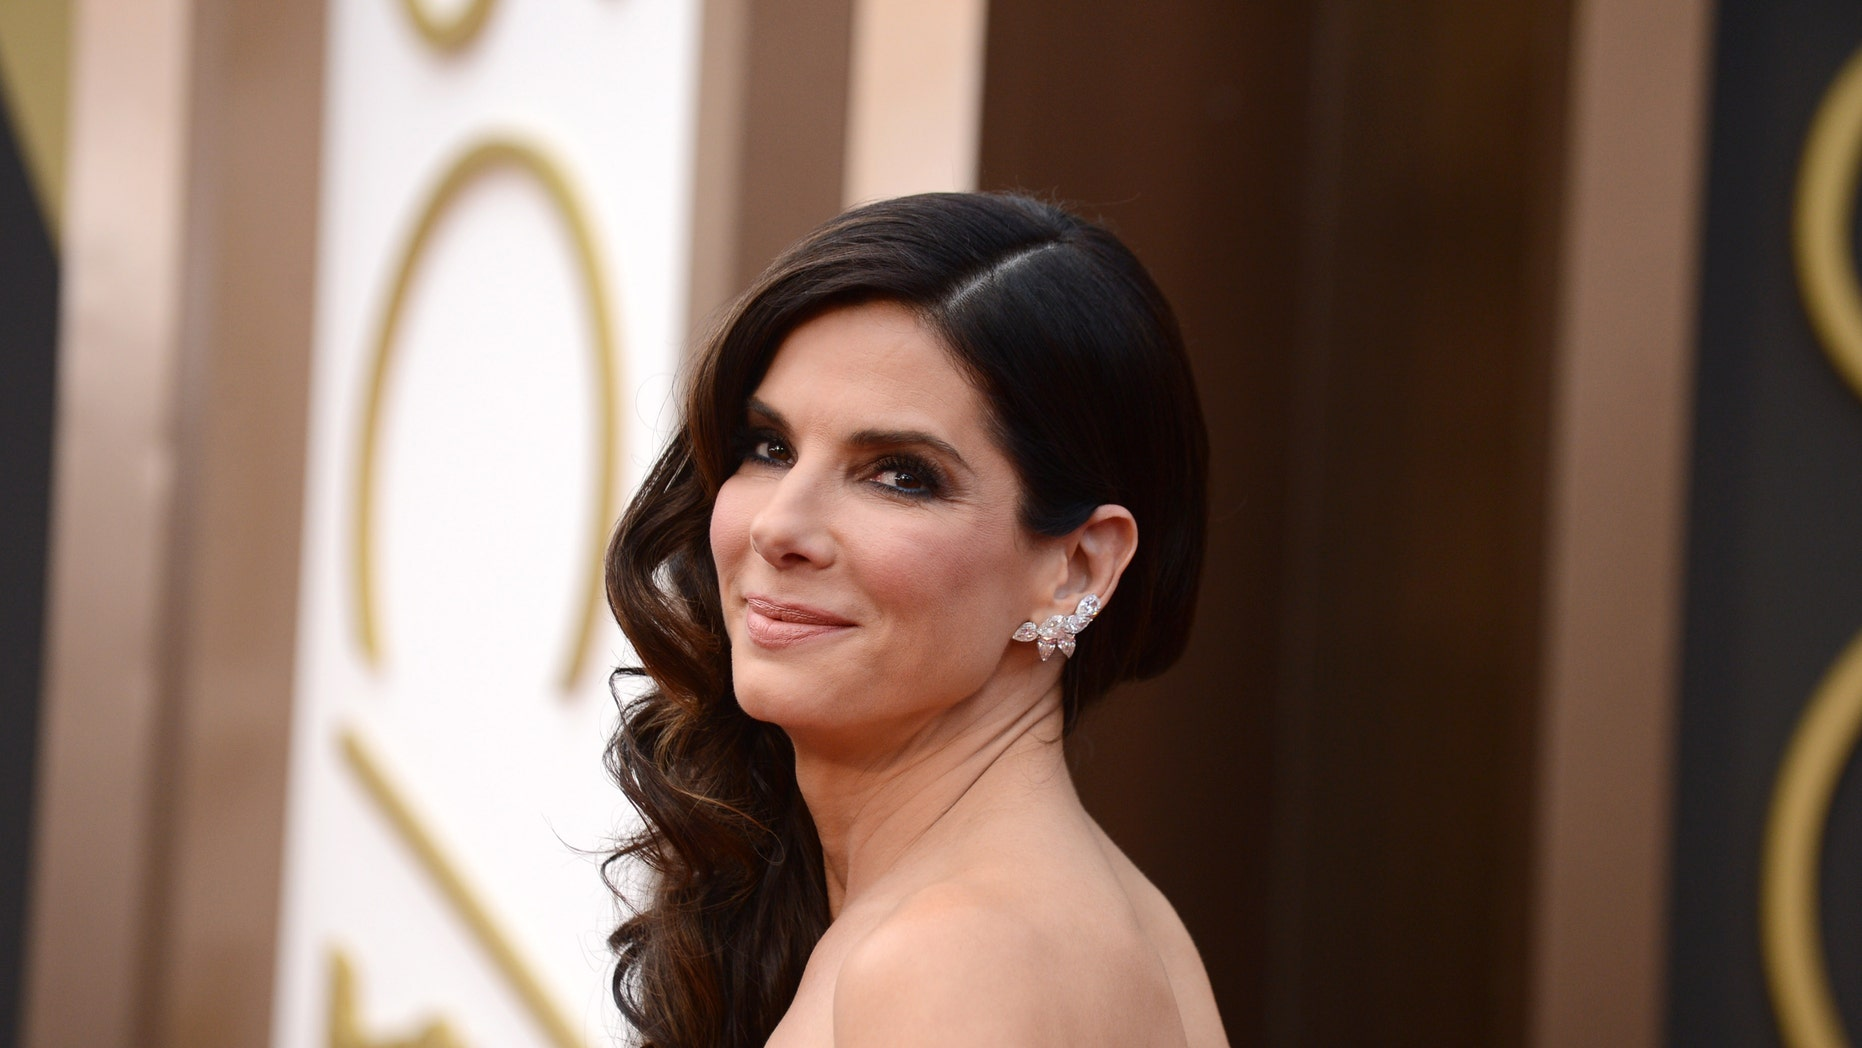 March 2, 2014. Sandra Bullock arrives at the Oscars at the Dolby Theatre, in Los Angeles.